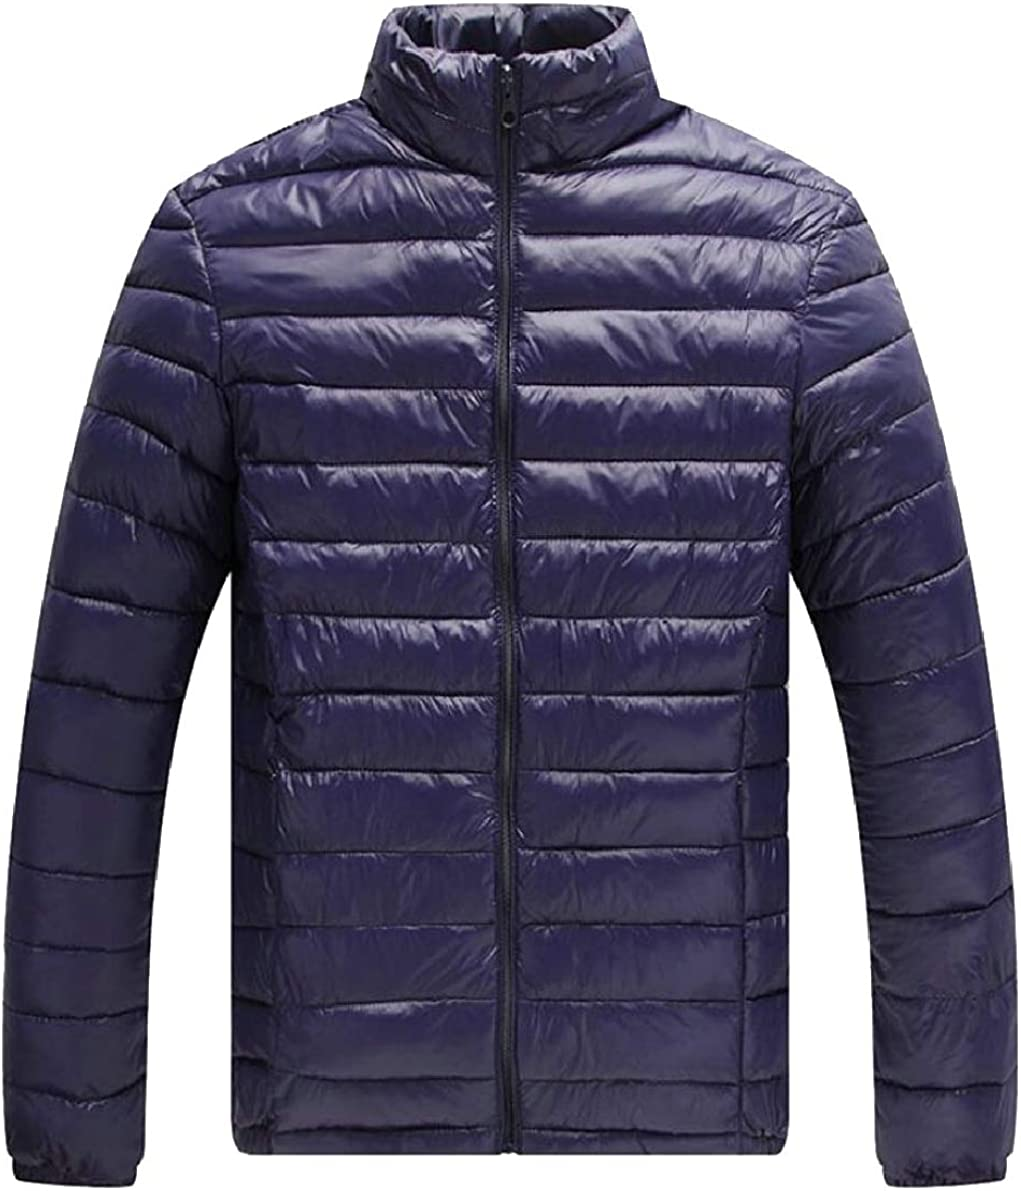 ONTBYB Mens Slim Quilted Winter Front-Zip Packable Solid Color Down Jacket Coat